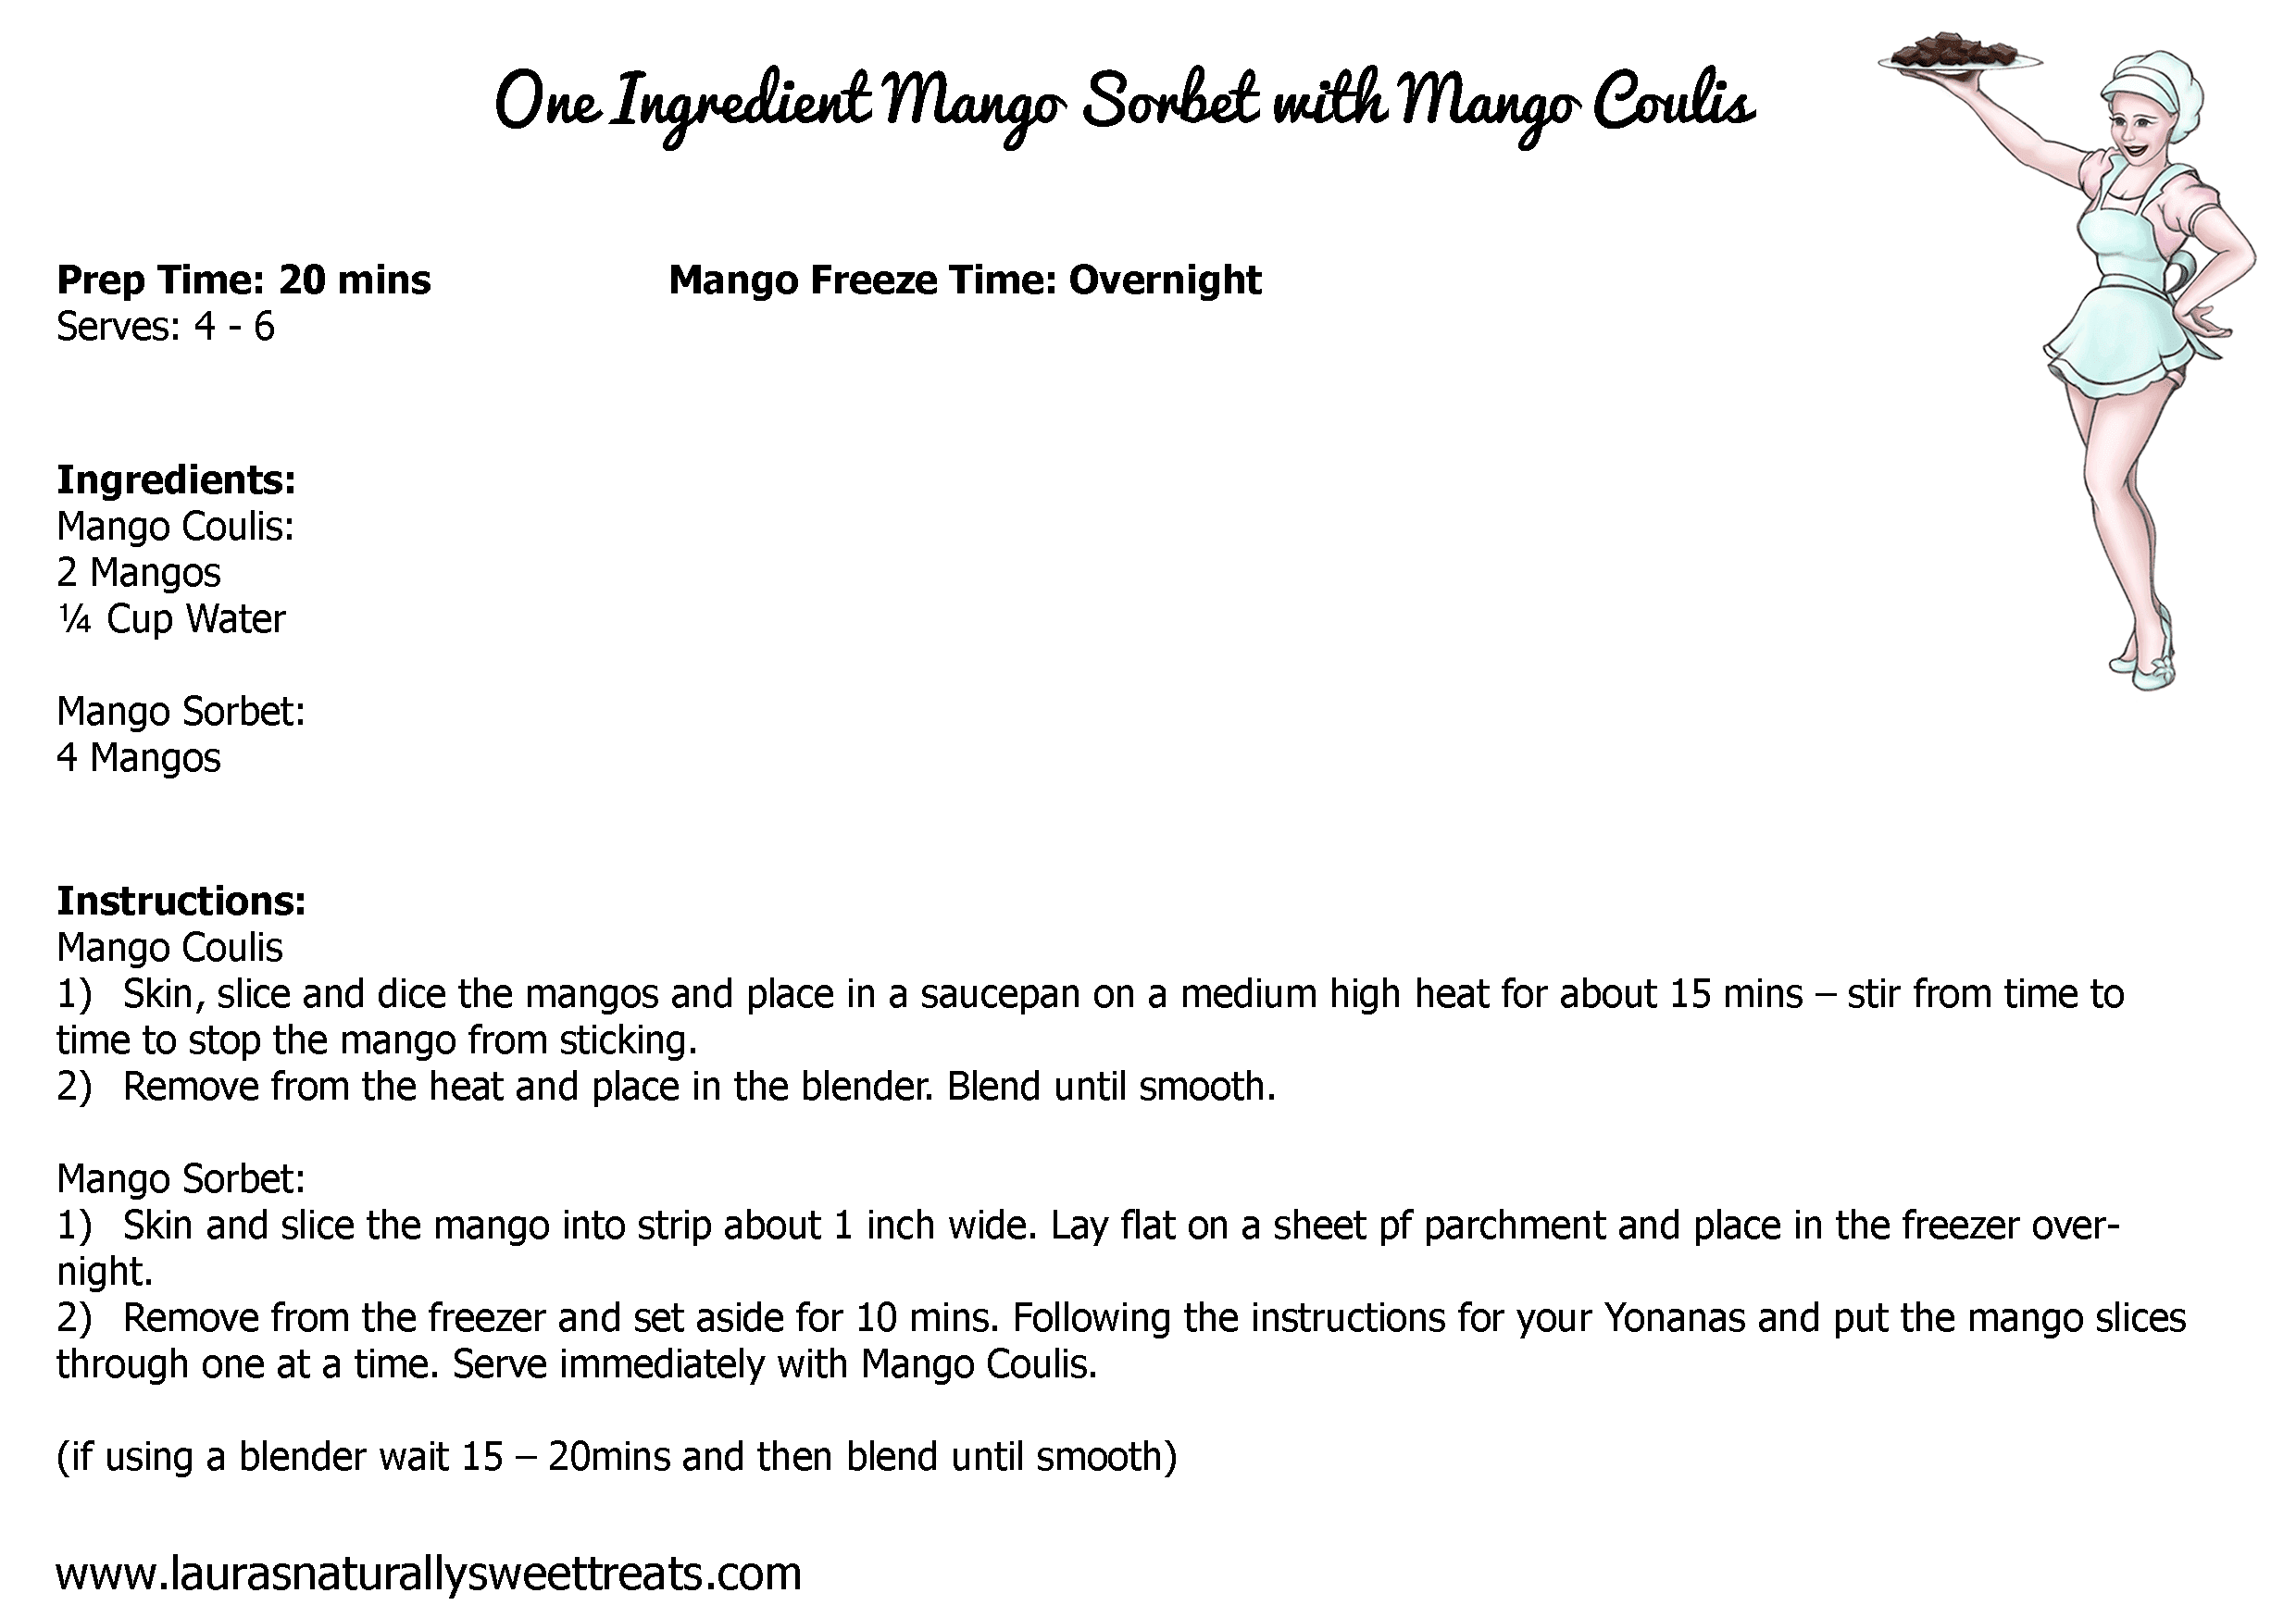 one ingredient mango sorbet with mango coulis recipe card